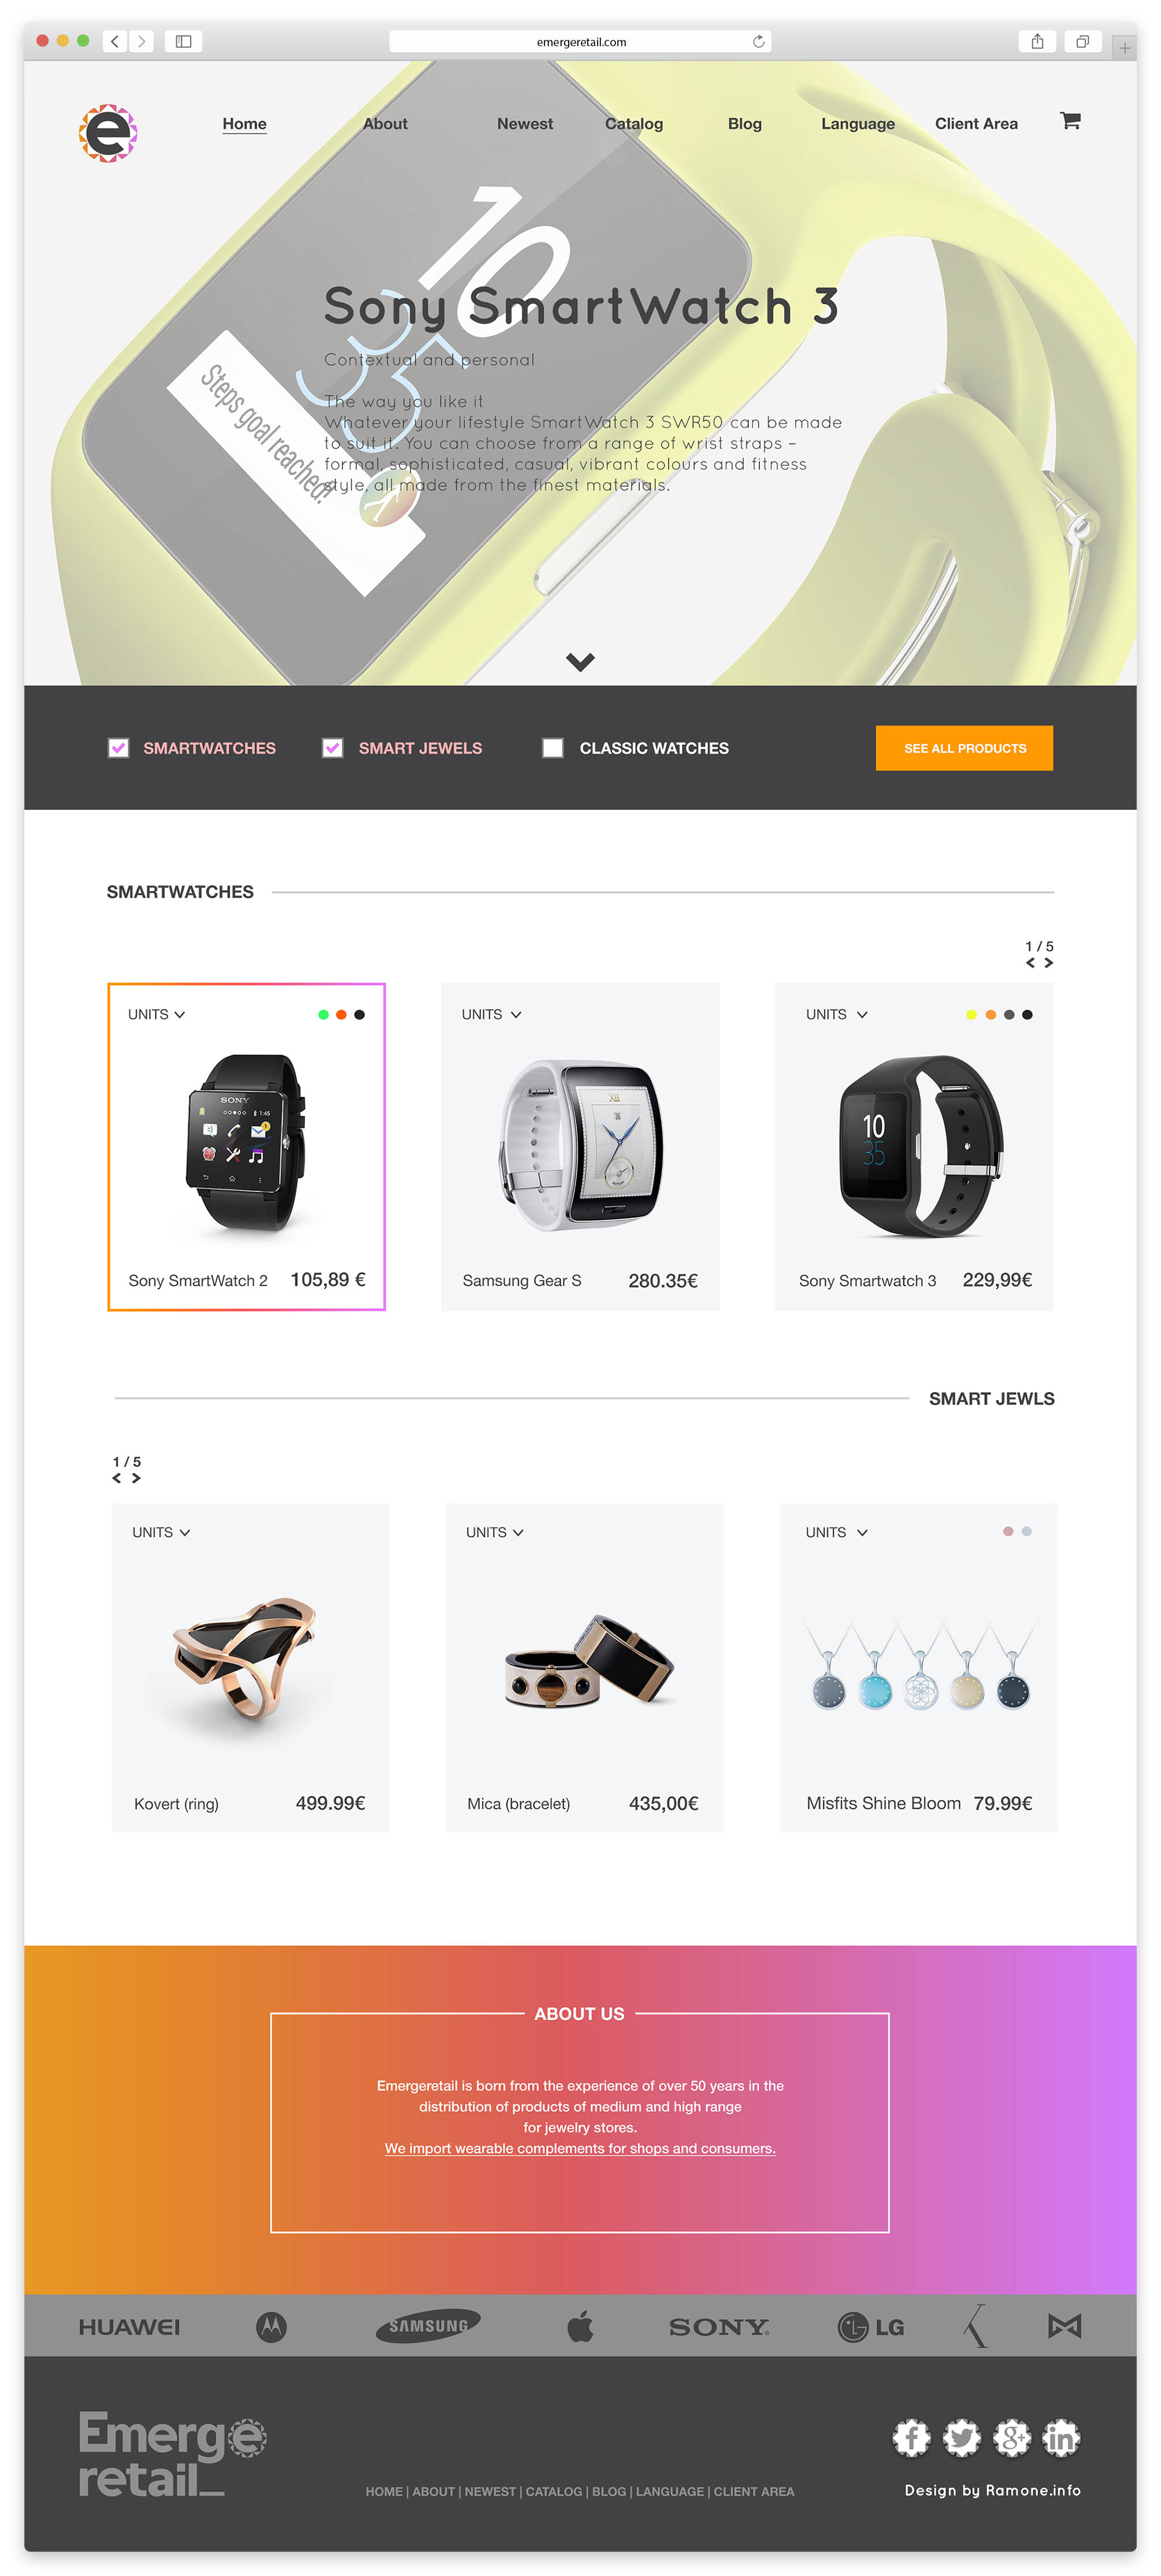 Emerge_retail_cont_4